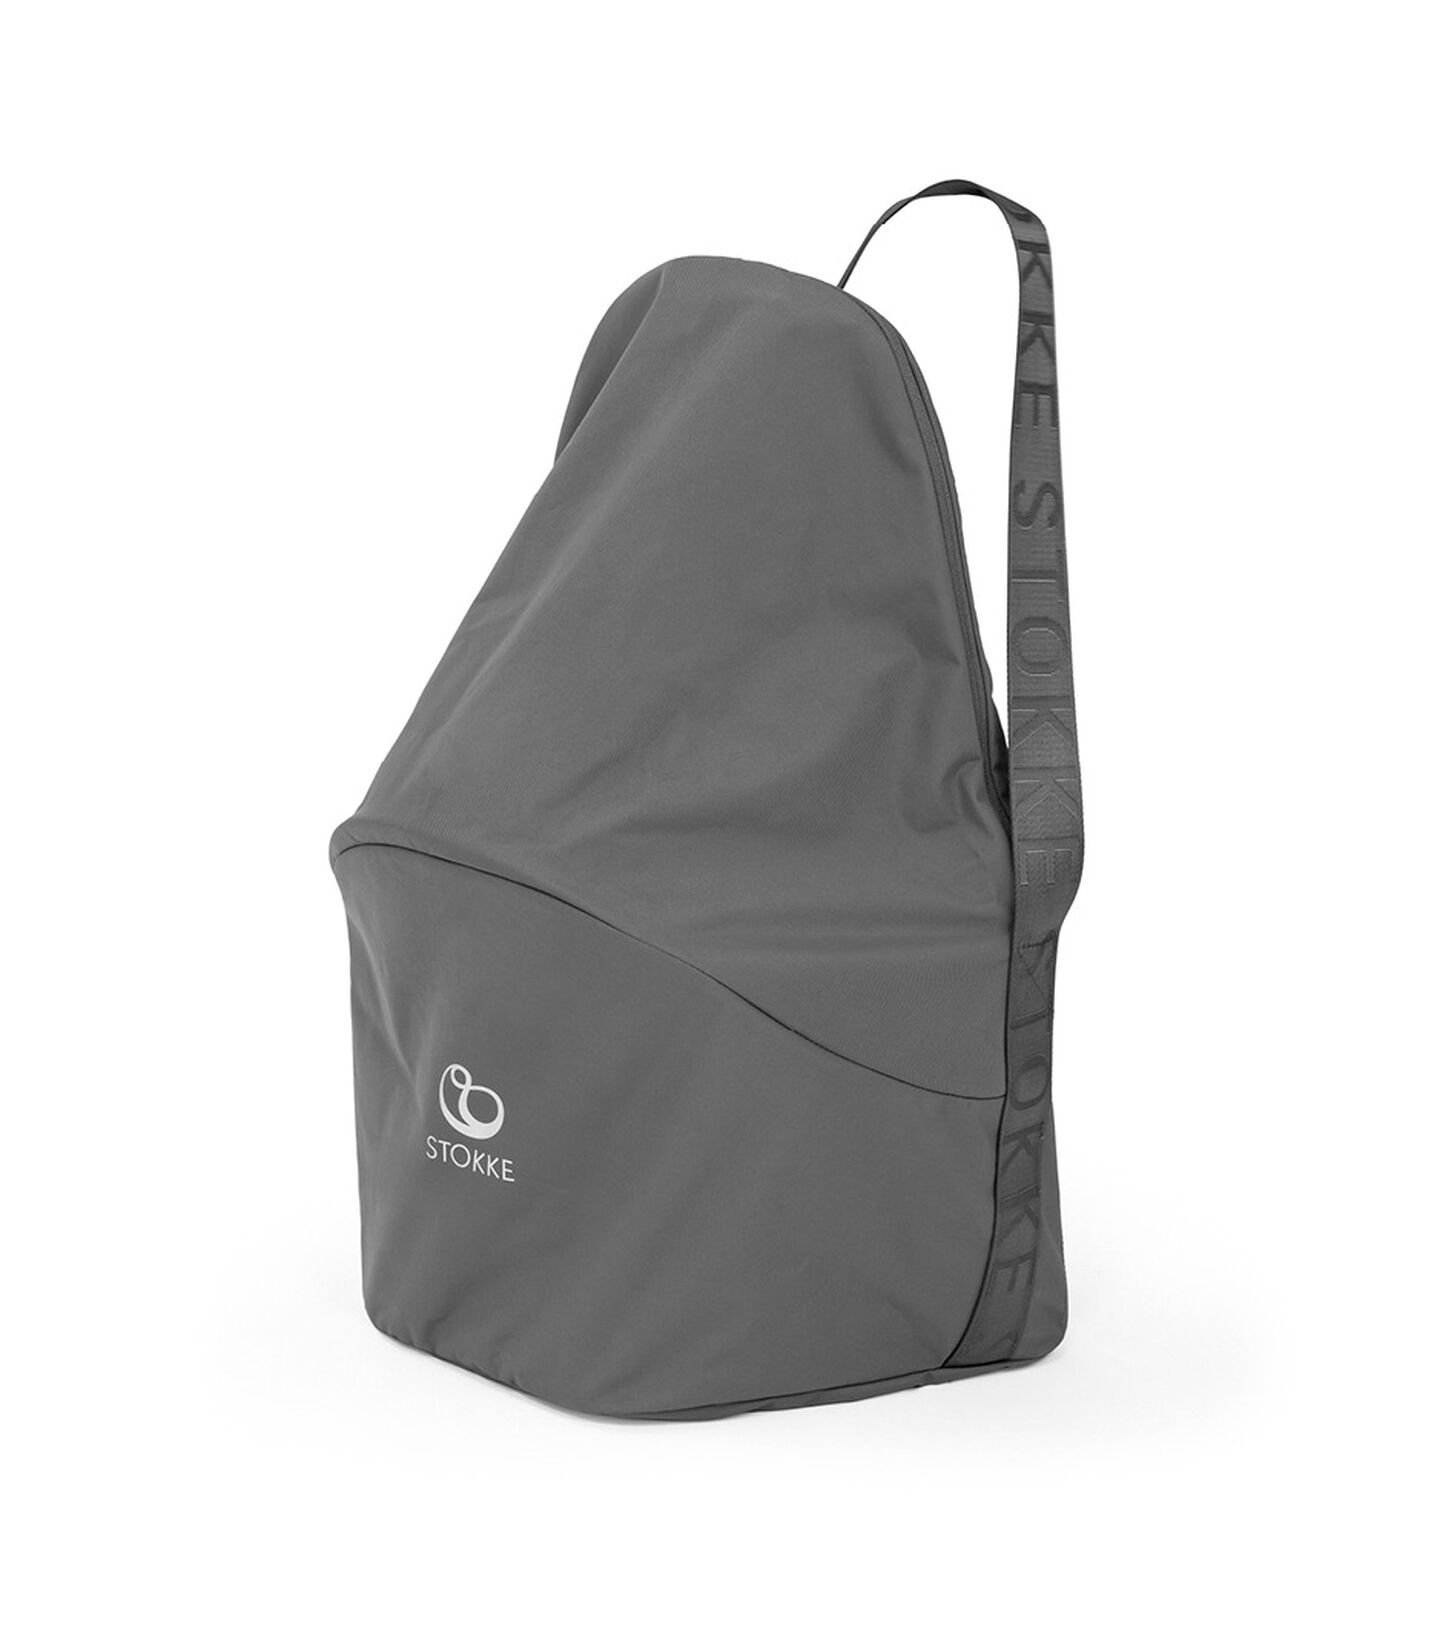 Stokke® Clikk™ Travel Bag Dark Grey, Kolor ciemno szary, mainview view 2